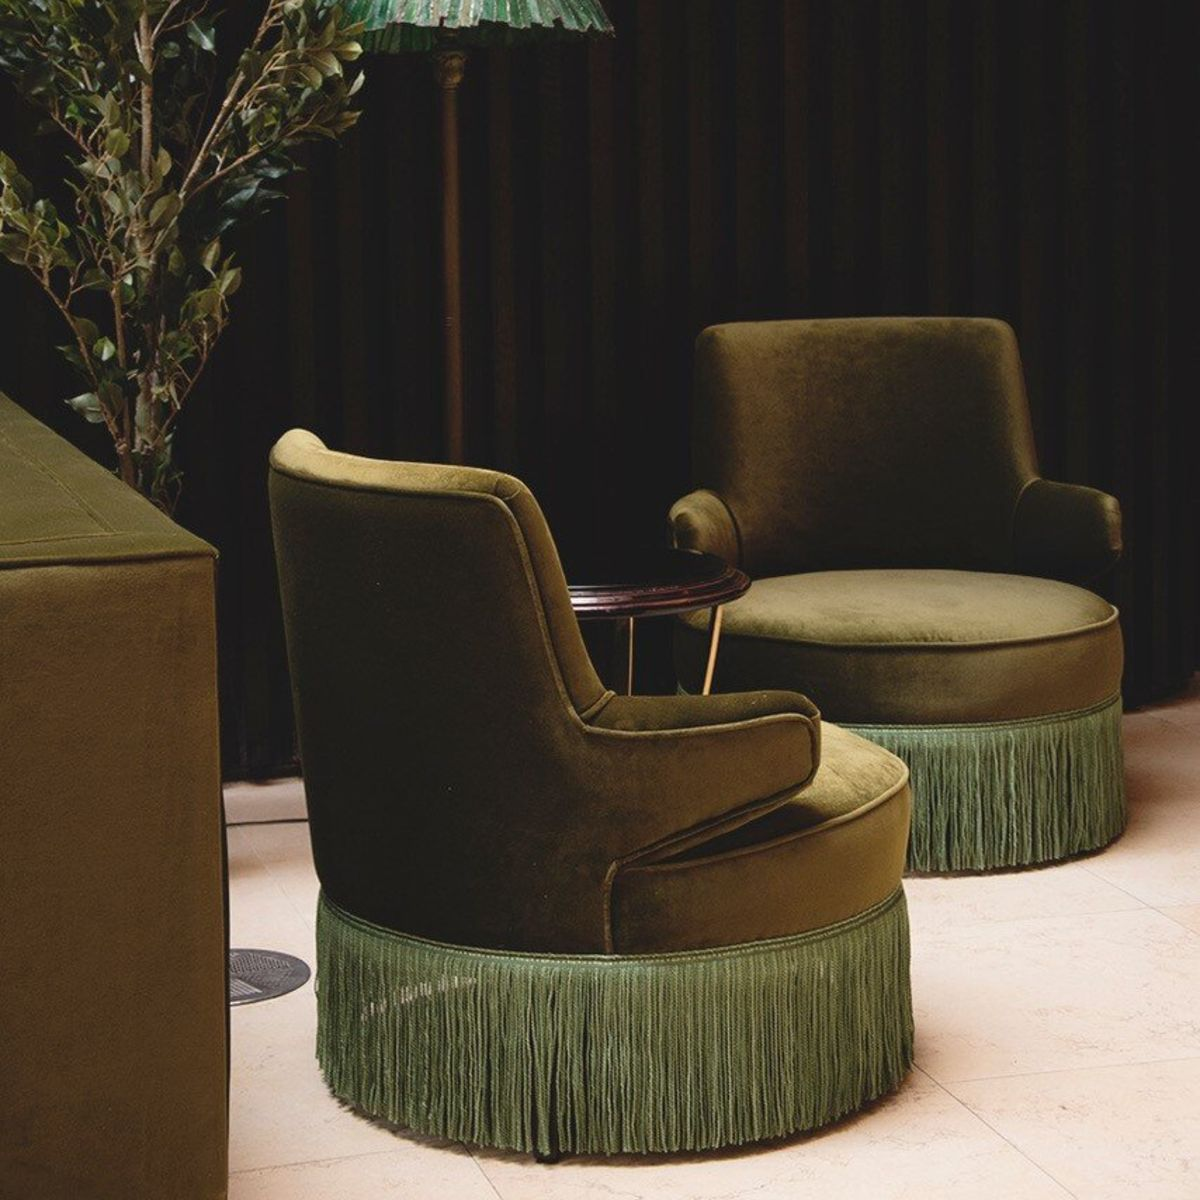 A photo of two Komodoro chairs